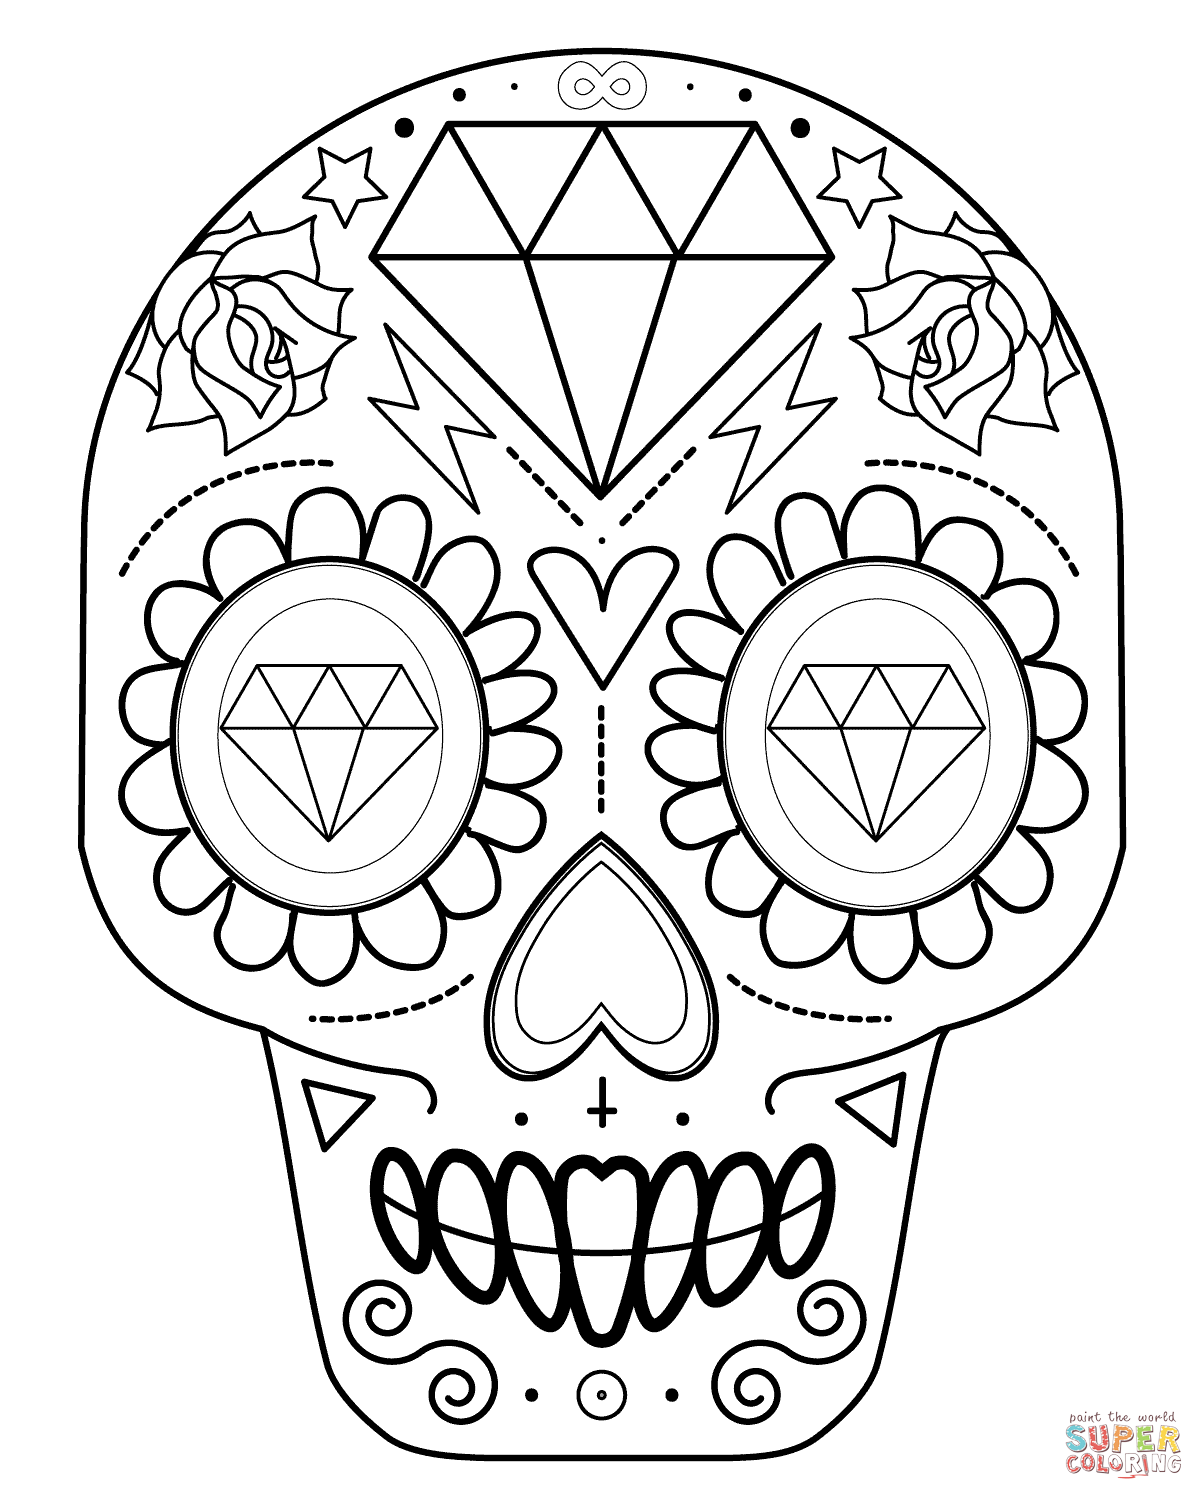 image relating to Sugar Skull Printable identify Sugar Skull With Diamonds Coloring Web site Absolutely free Printable